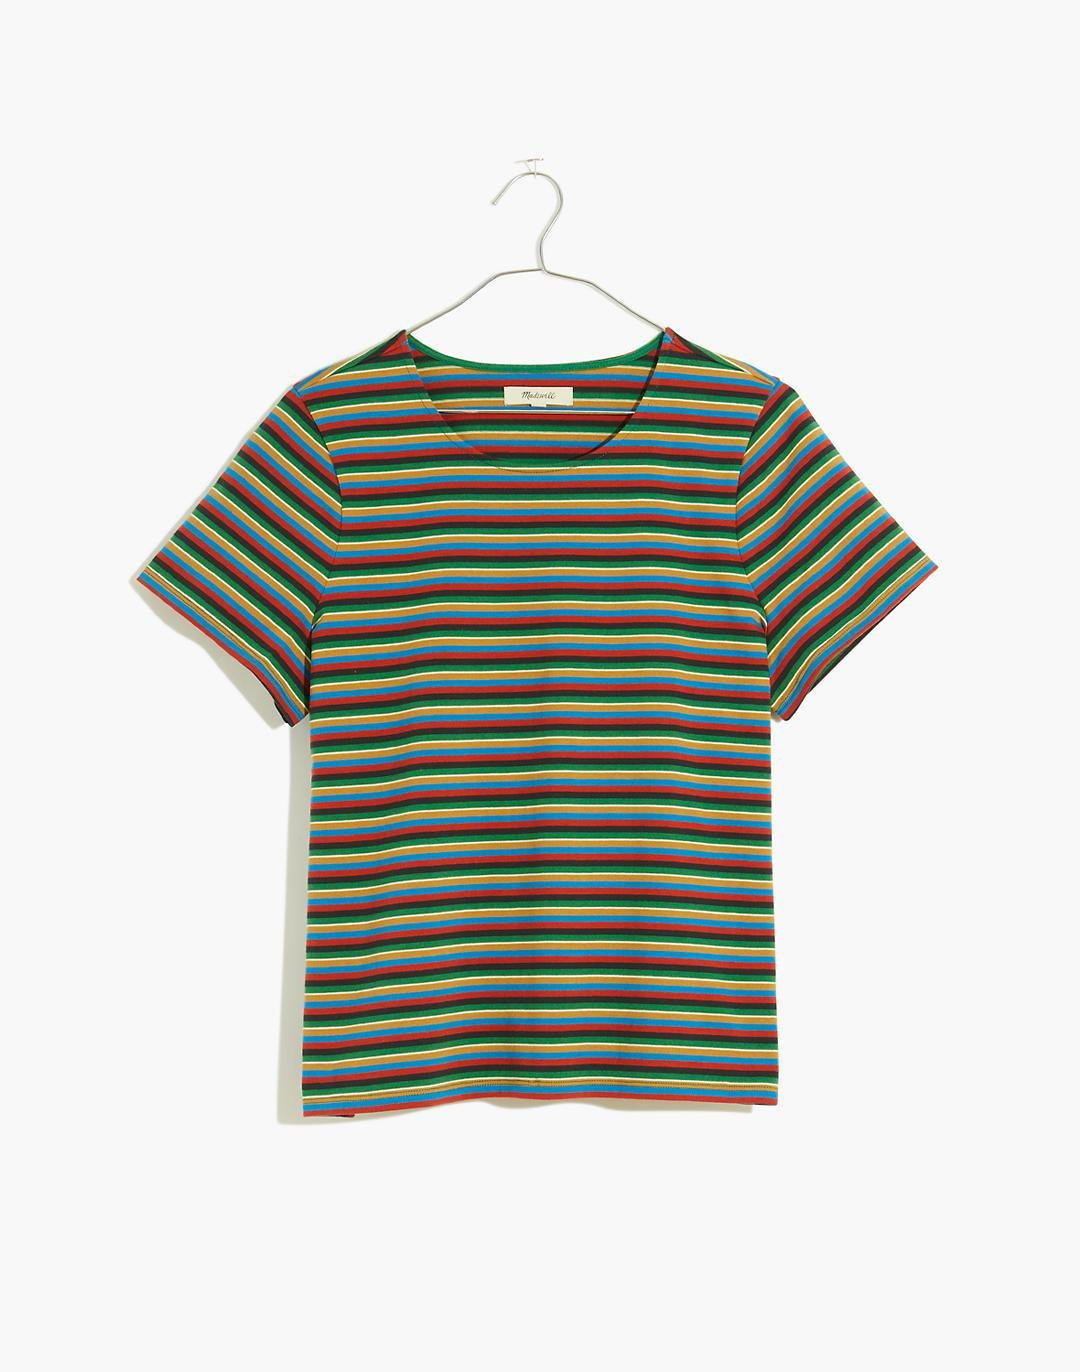 Luxe Boxy-Crop Tee in Mathis Stripe 3